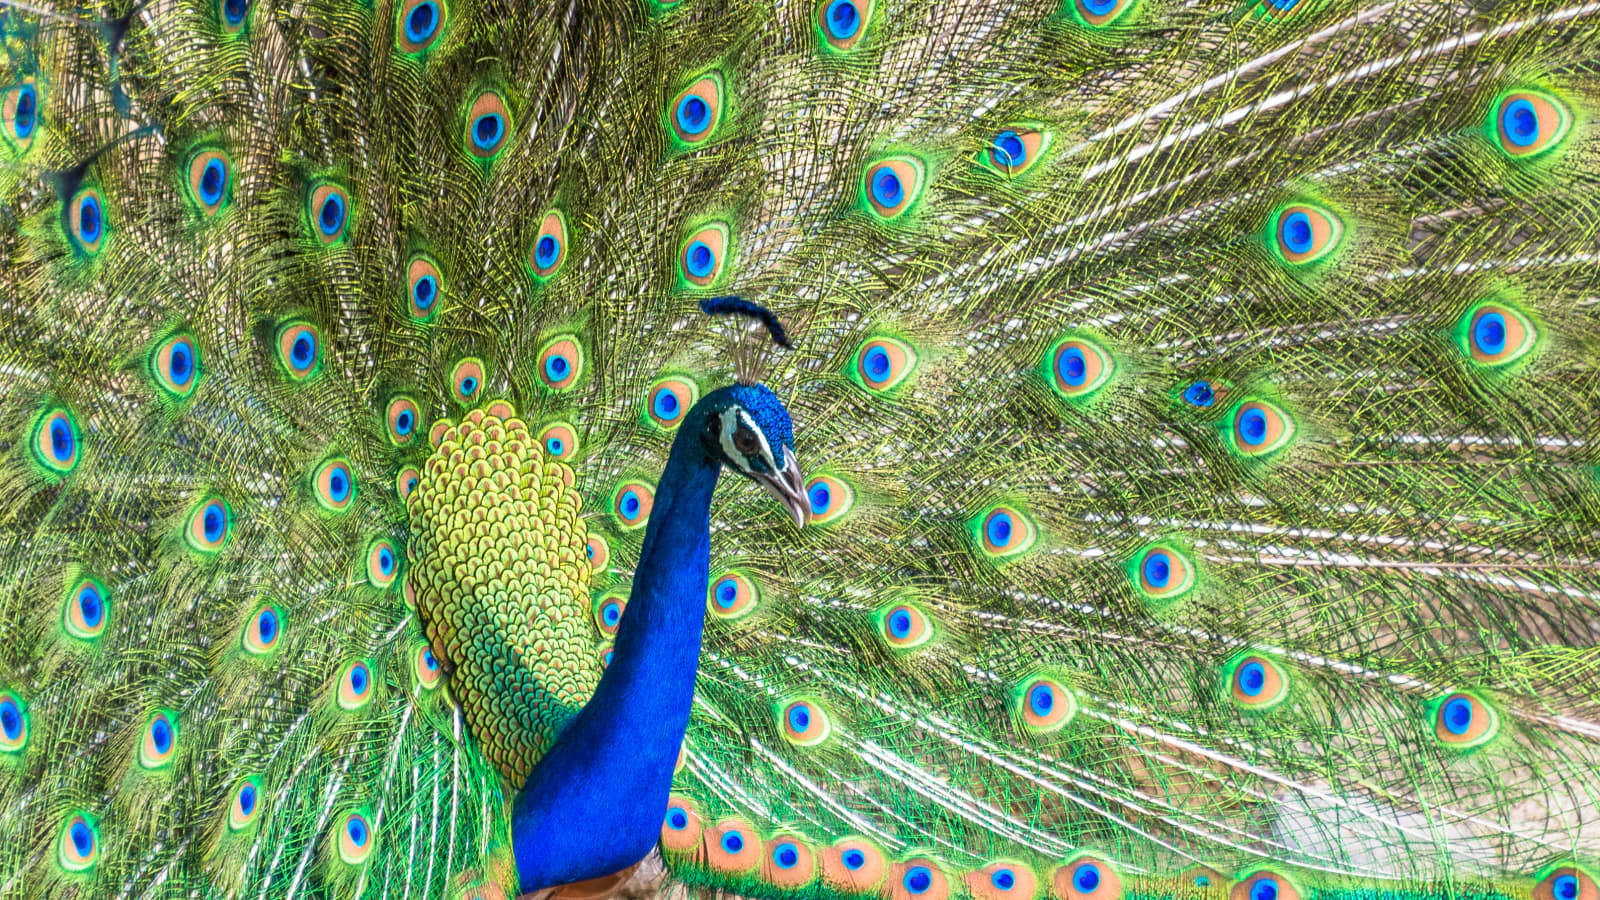 NBCUniversal Peacock unveiling: What to expect